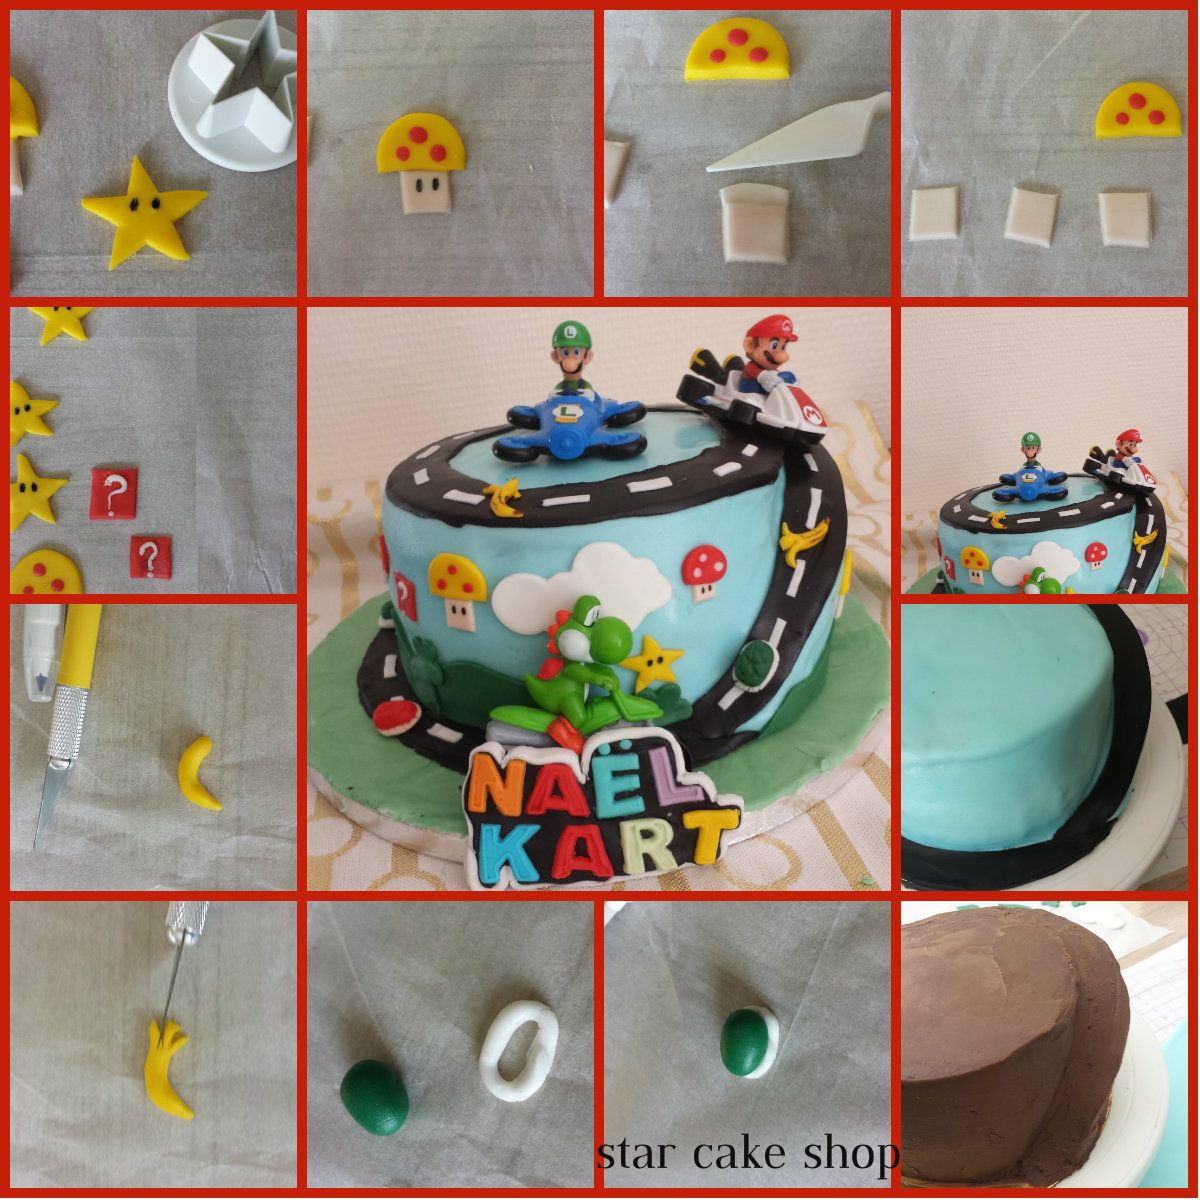 tuto g teau mario kart star cake shop g teau p te sucre et autres pinterest gateau. Black Bedroom Furniture Sets. Home Design Ideas